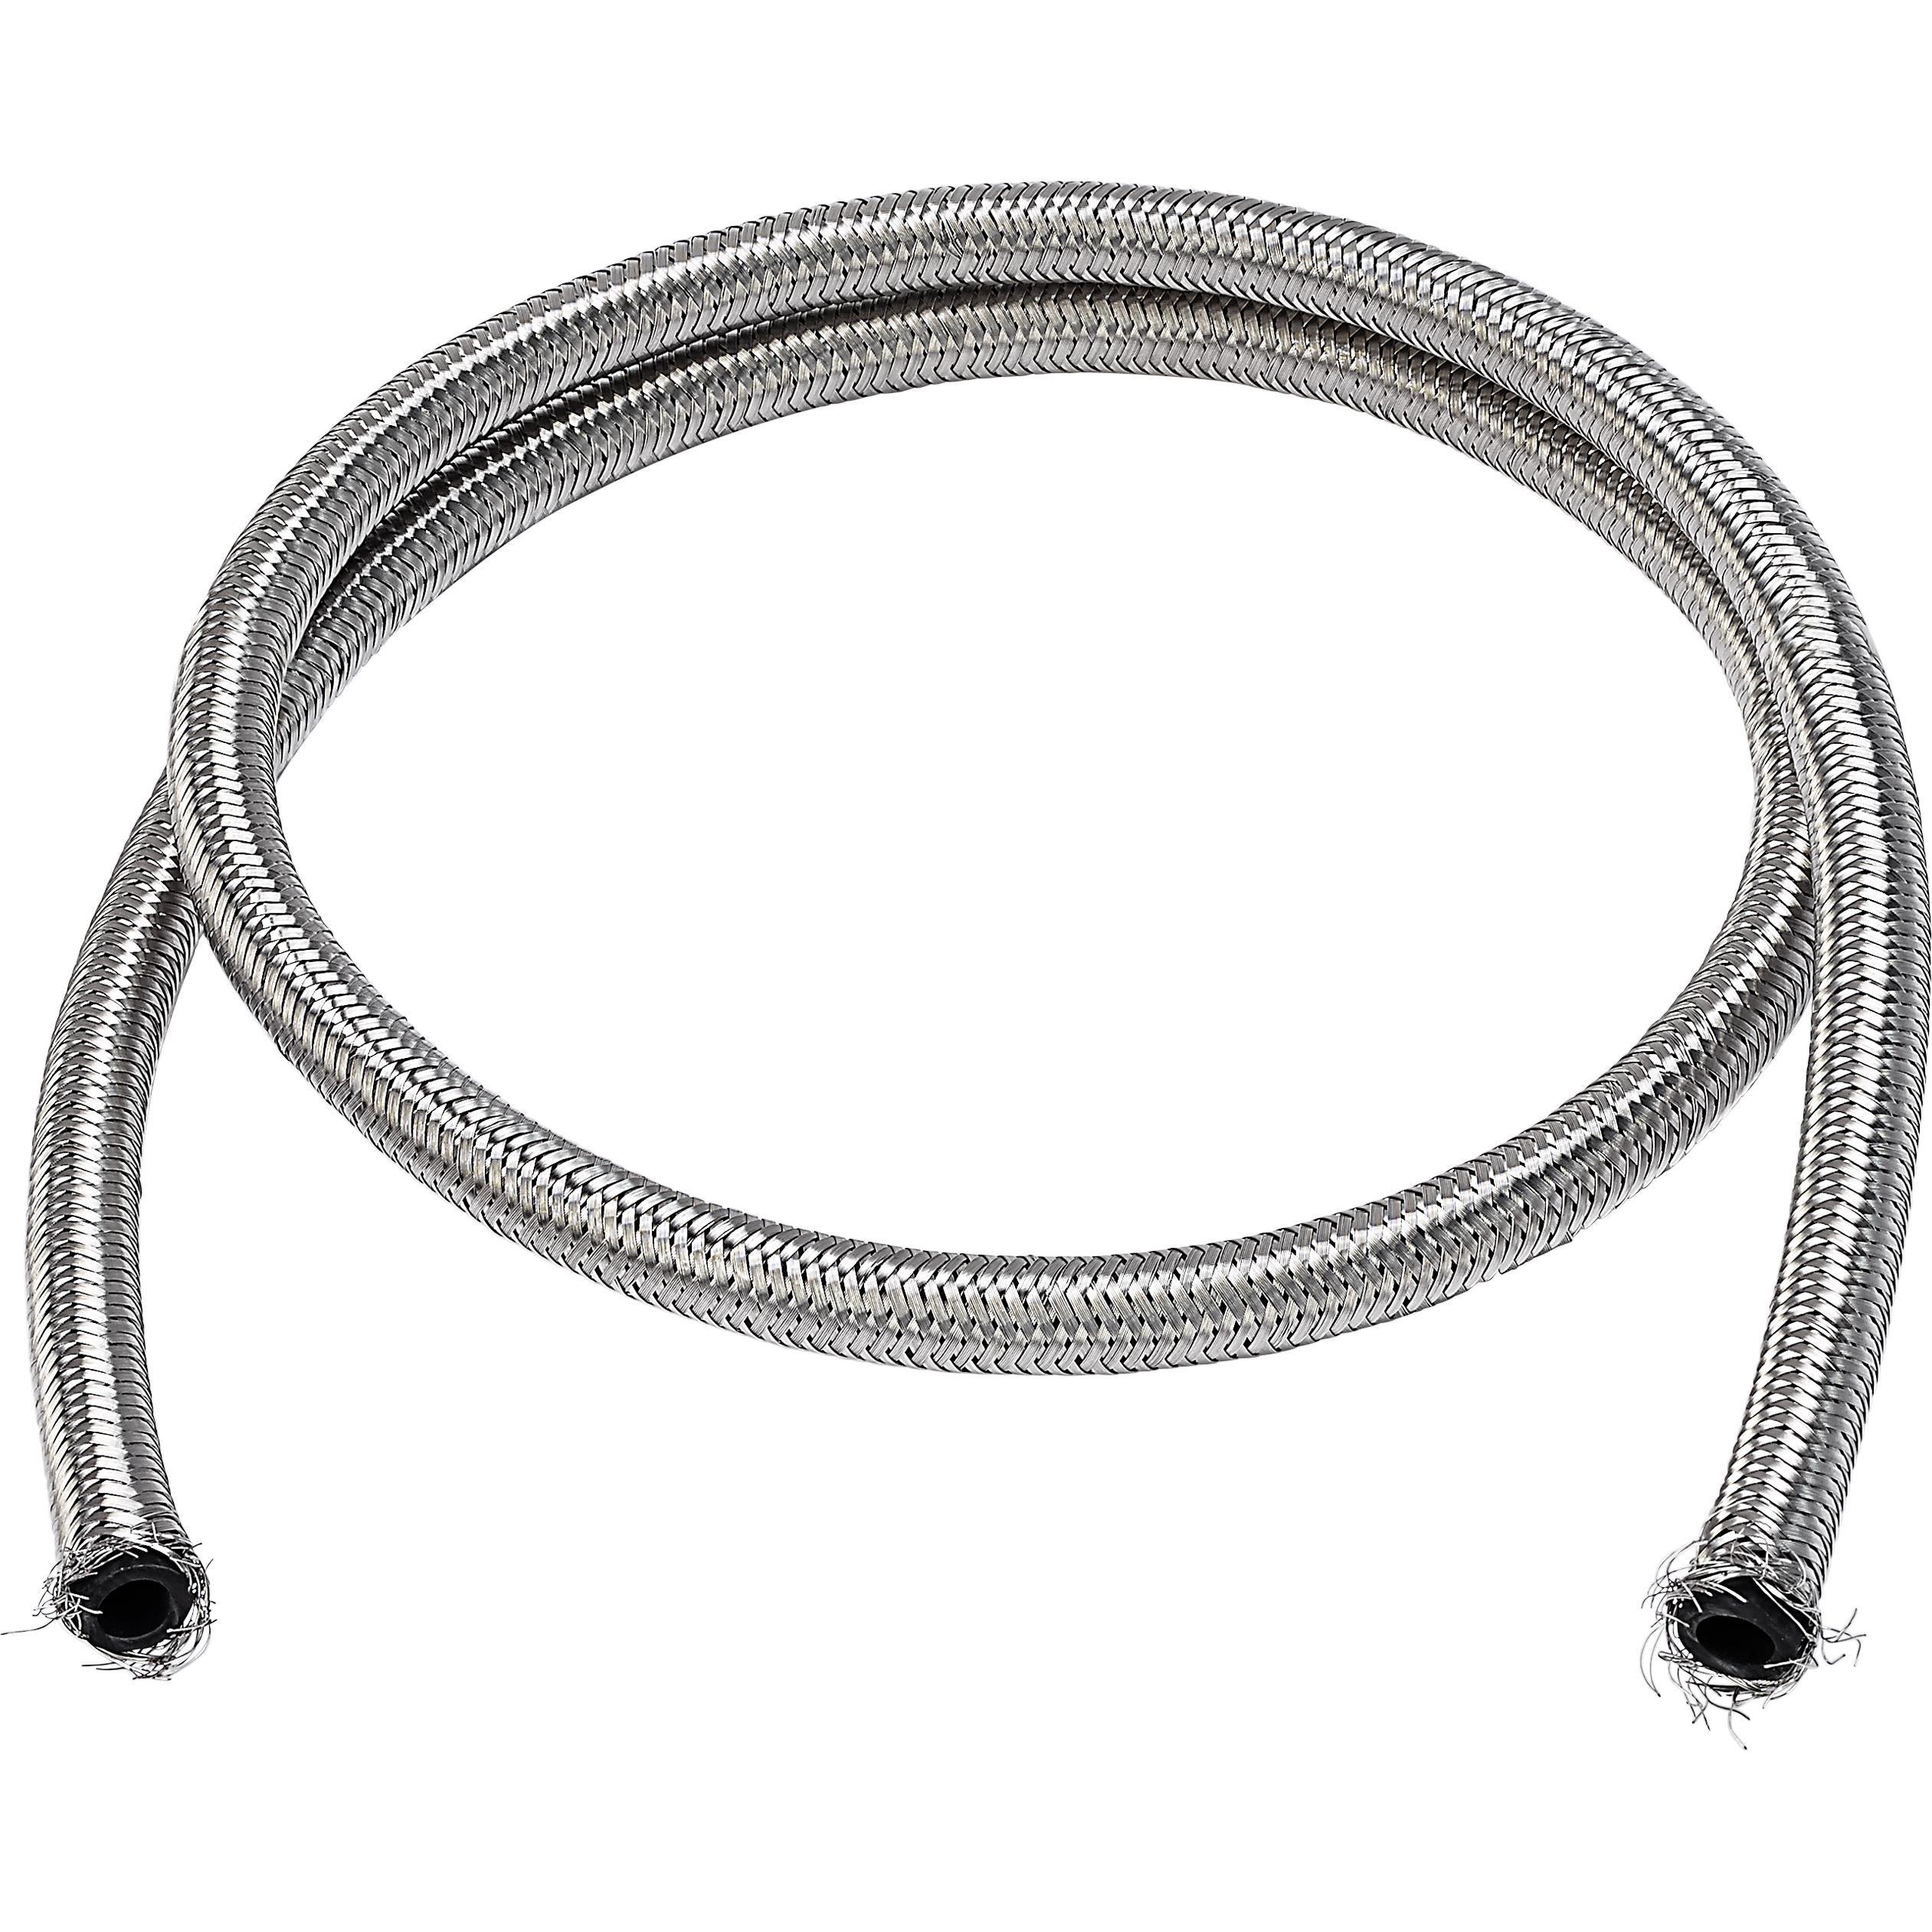 FUEL LINE STEEL BRAIDED 6MM X 1METER